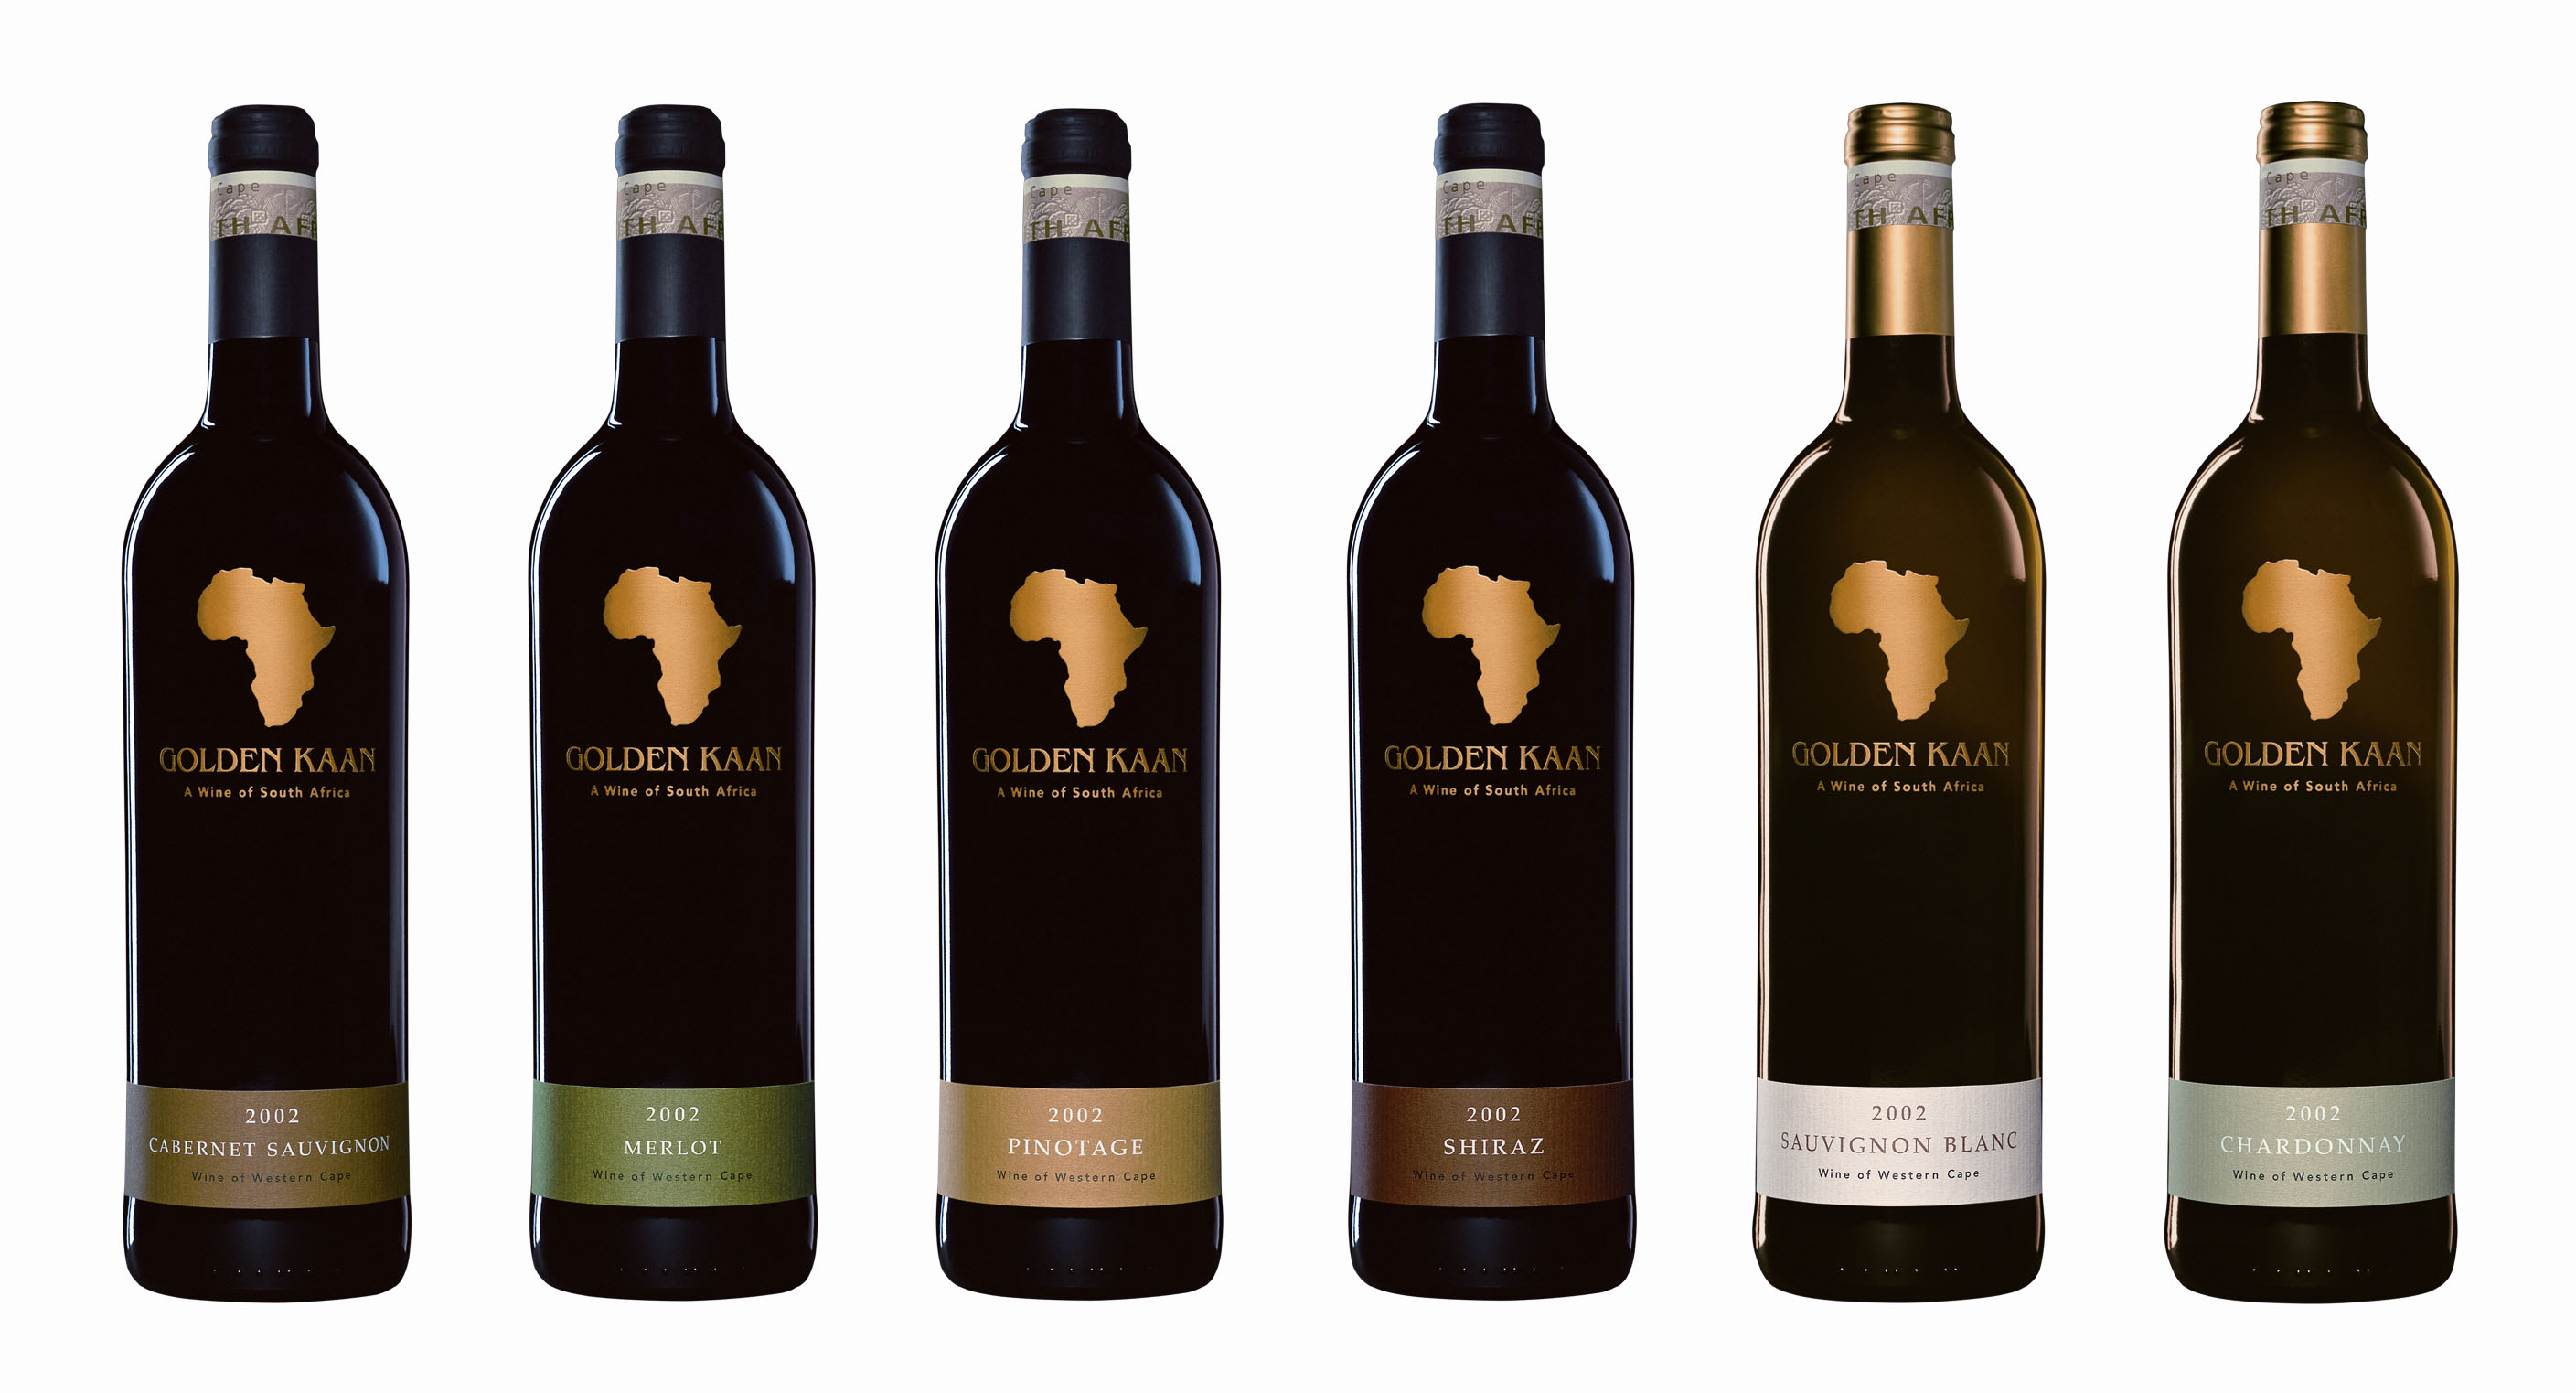 Golden kaan aims to bring attention to south african wine for Jardin wine south africa